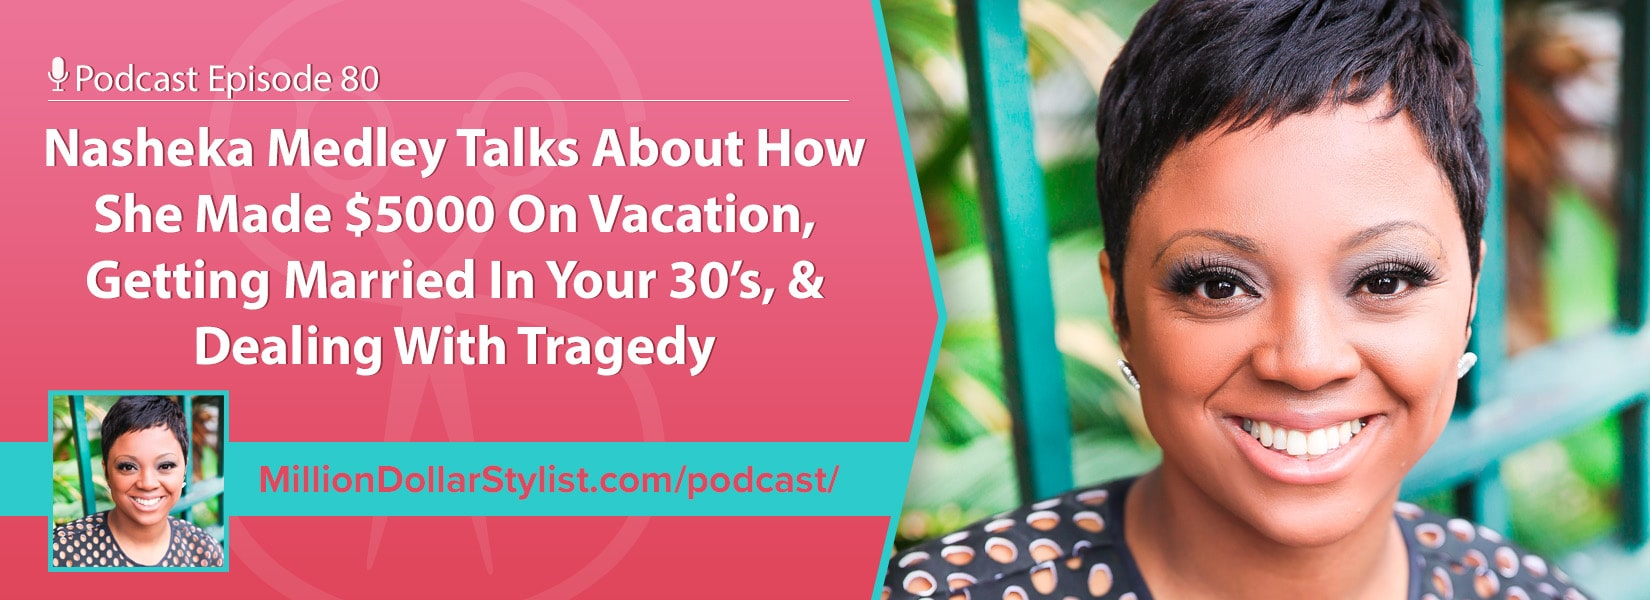 Episode 080 – Nasheka Medley Talks About How She Made $5000 On Vacation, Getting Married In Your 30's, & Dealing With Tragedy 1